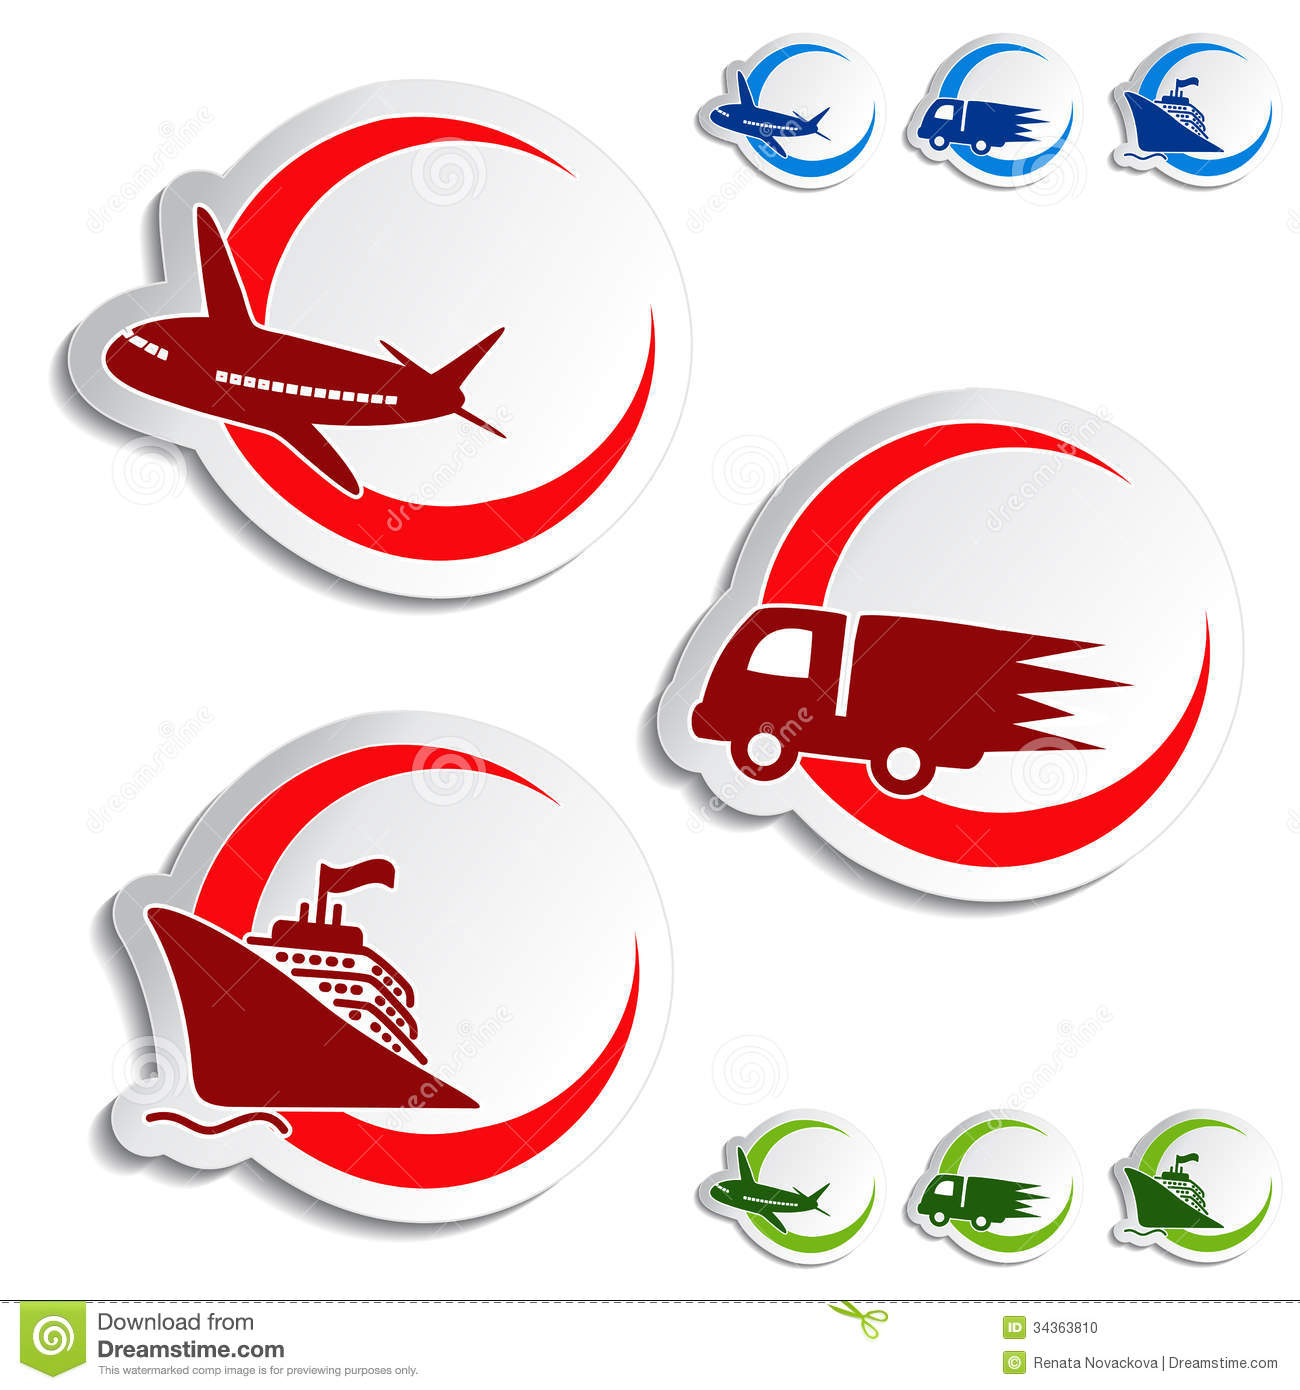 Shipping, Delivery Stickers - Car, Ship, Plane Stock Photo - Image ...